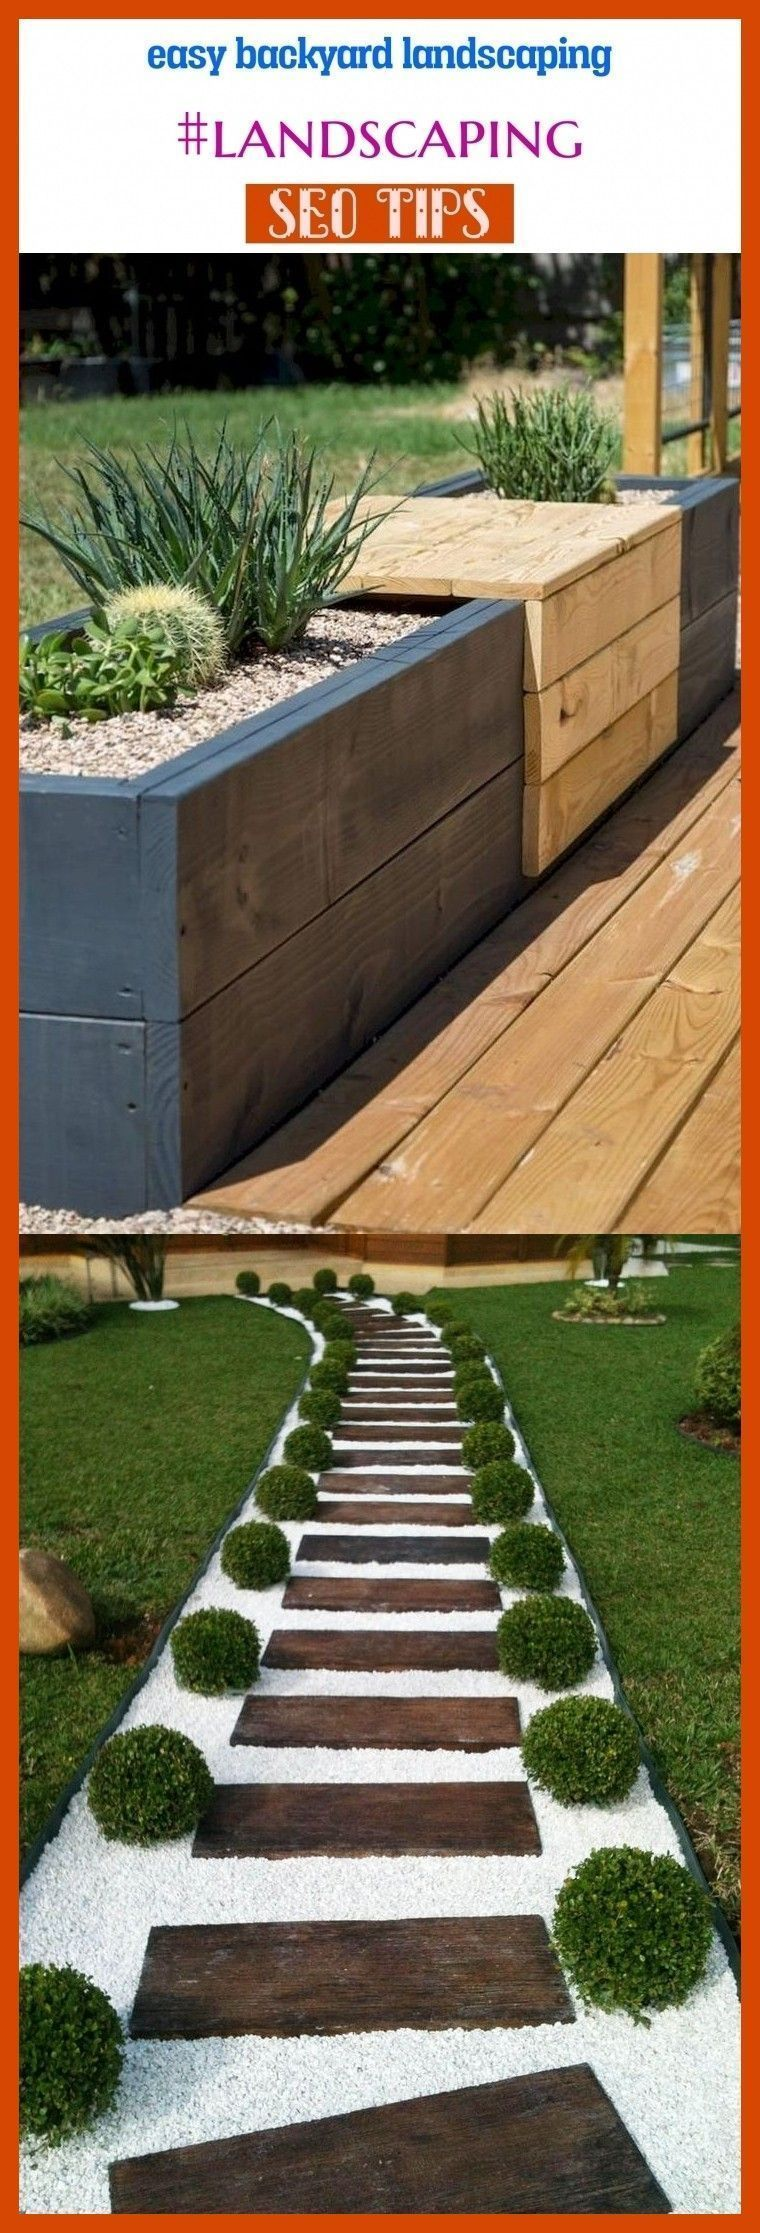 Simple Garden Design # Landscaping # Keywords #Niches # ...#design #garden #keyw... - Welcome to Blog